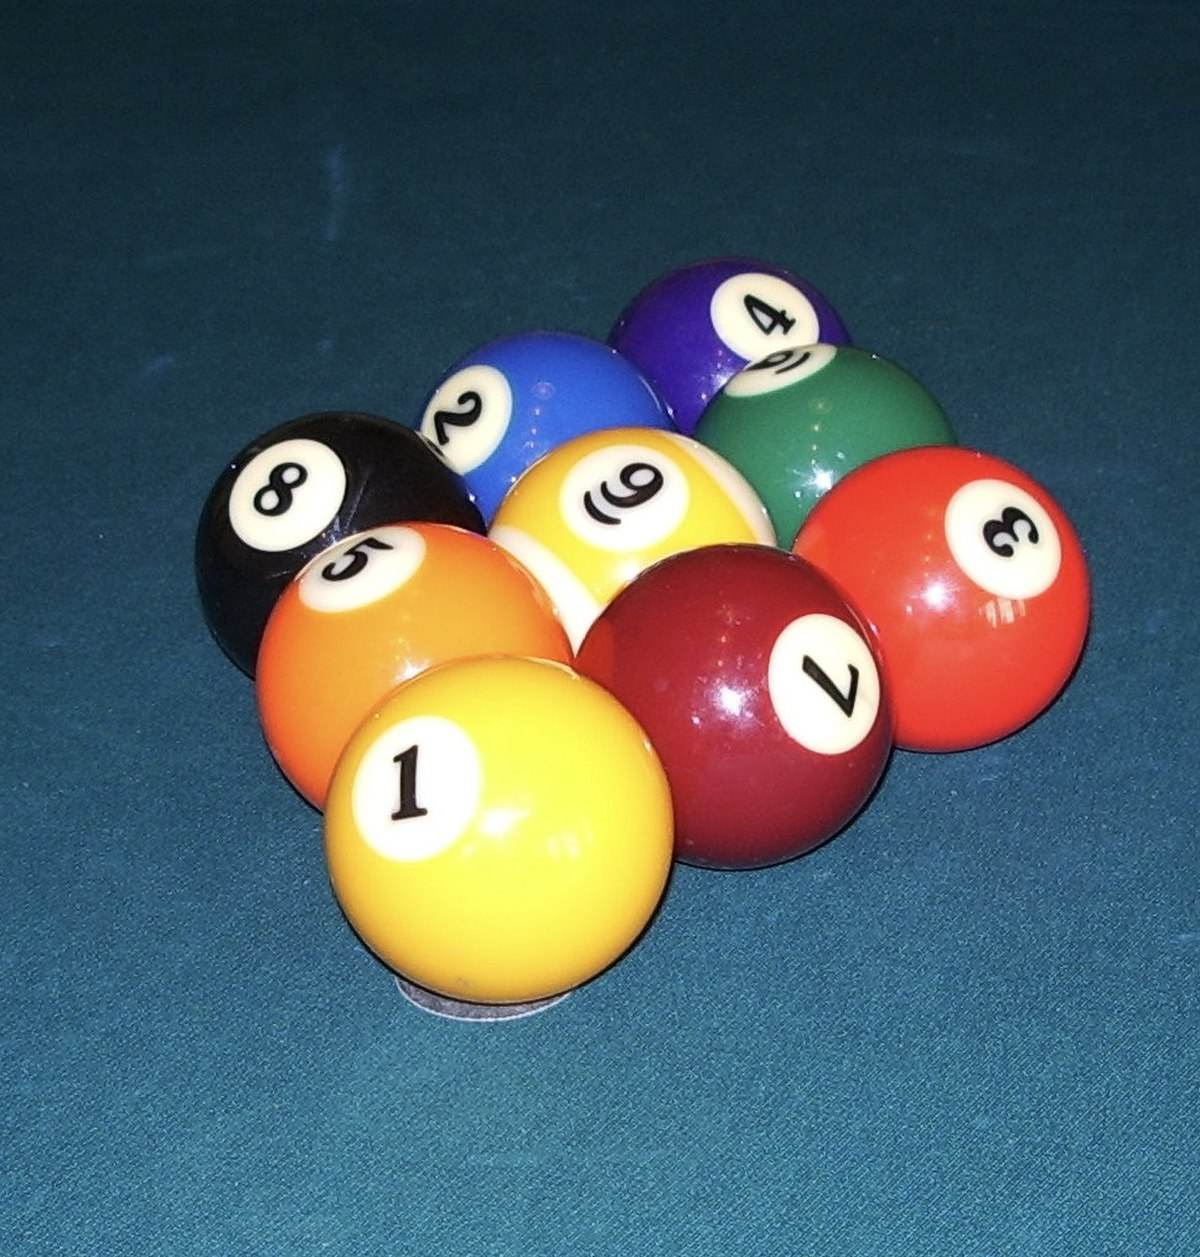 nine ball wikipedia